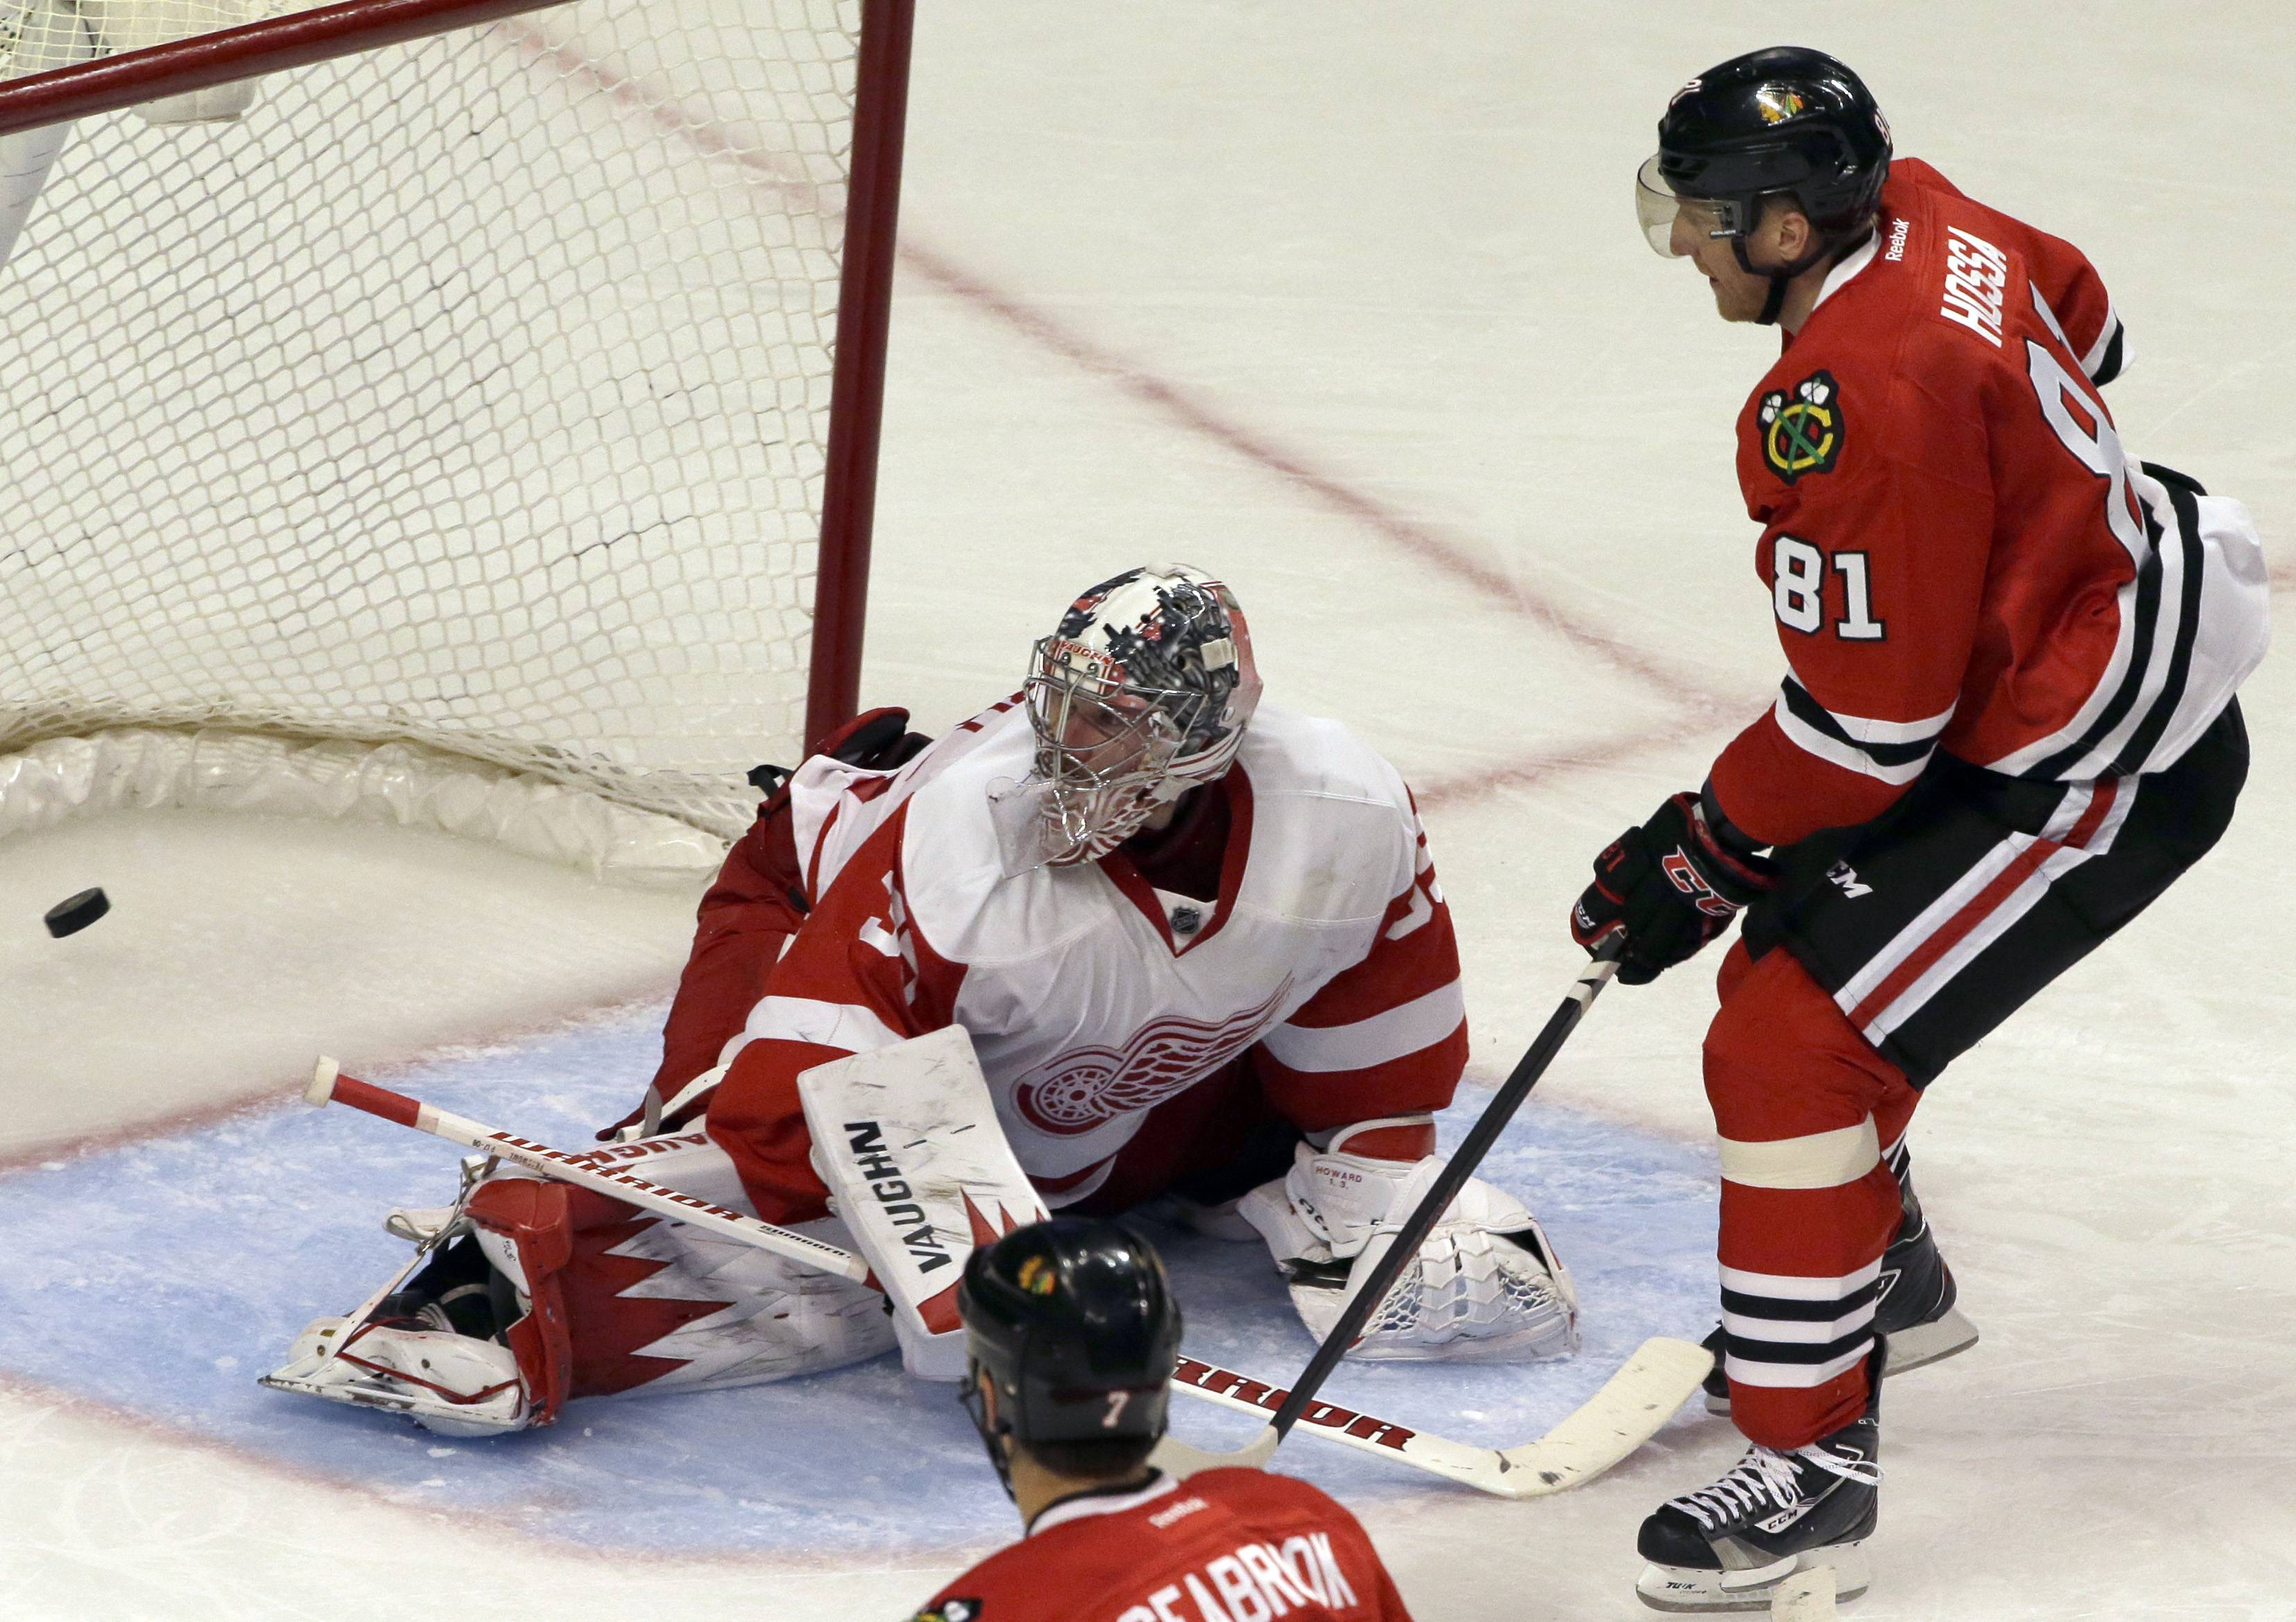 The Blackhawks' Marian Hossa scores against Red Wings goalie Jimmy Howard in the third period Sunday. Hossa also had a pair of assists.